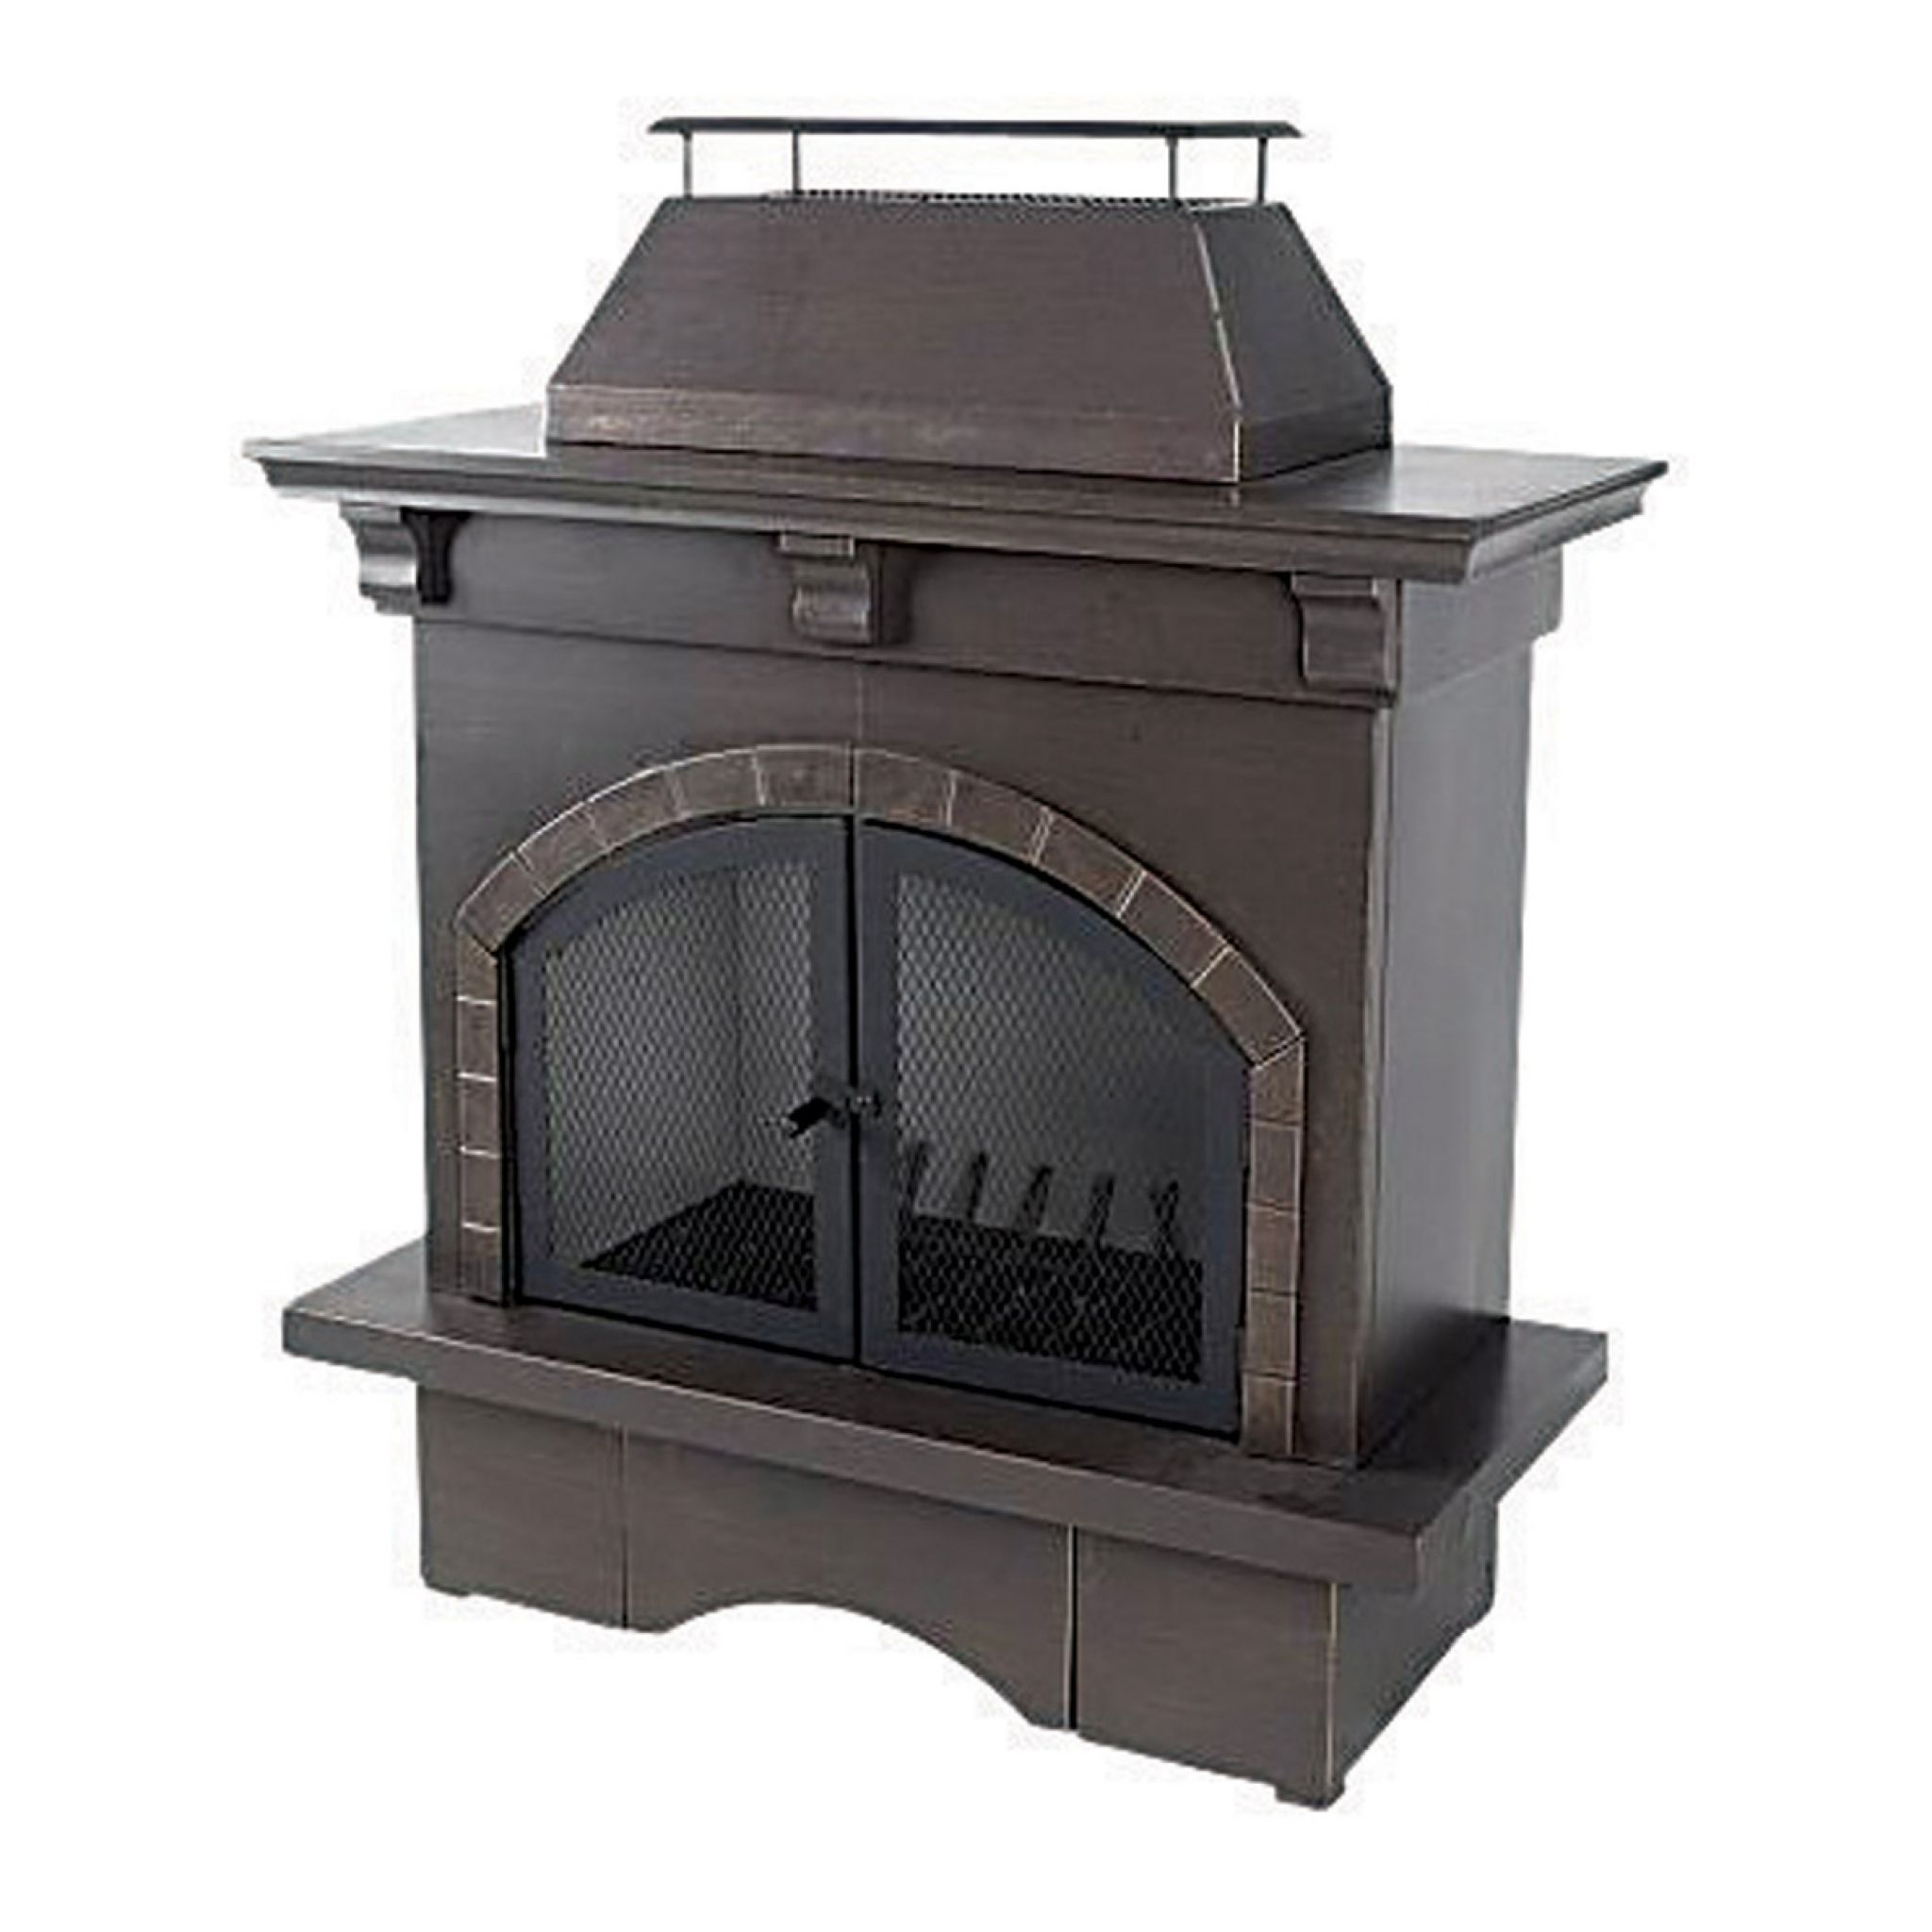 Cast Iron Outdoor Fireplace   Best Paint For Interior Check More At Http://